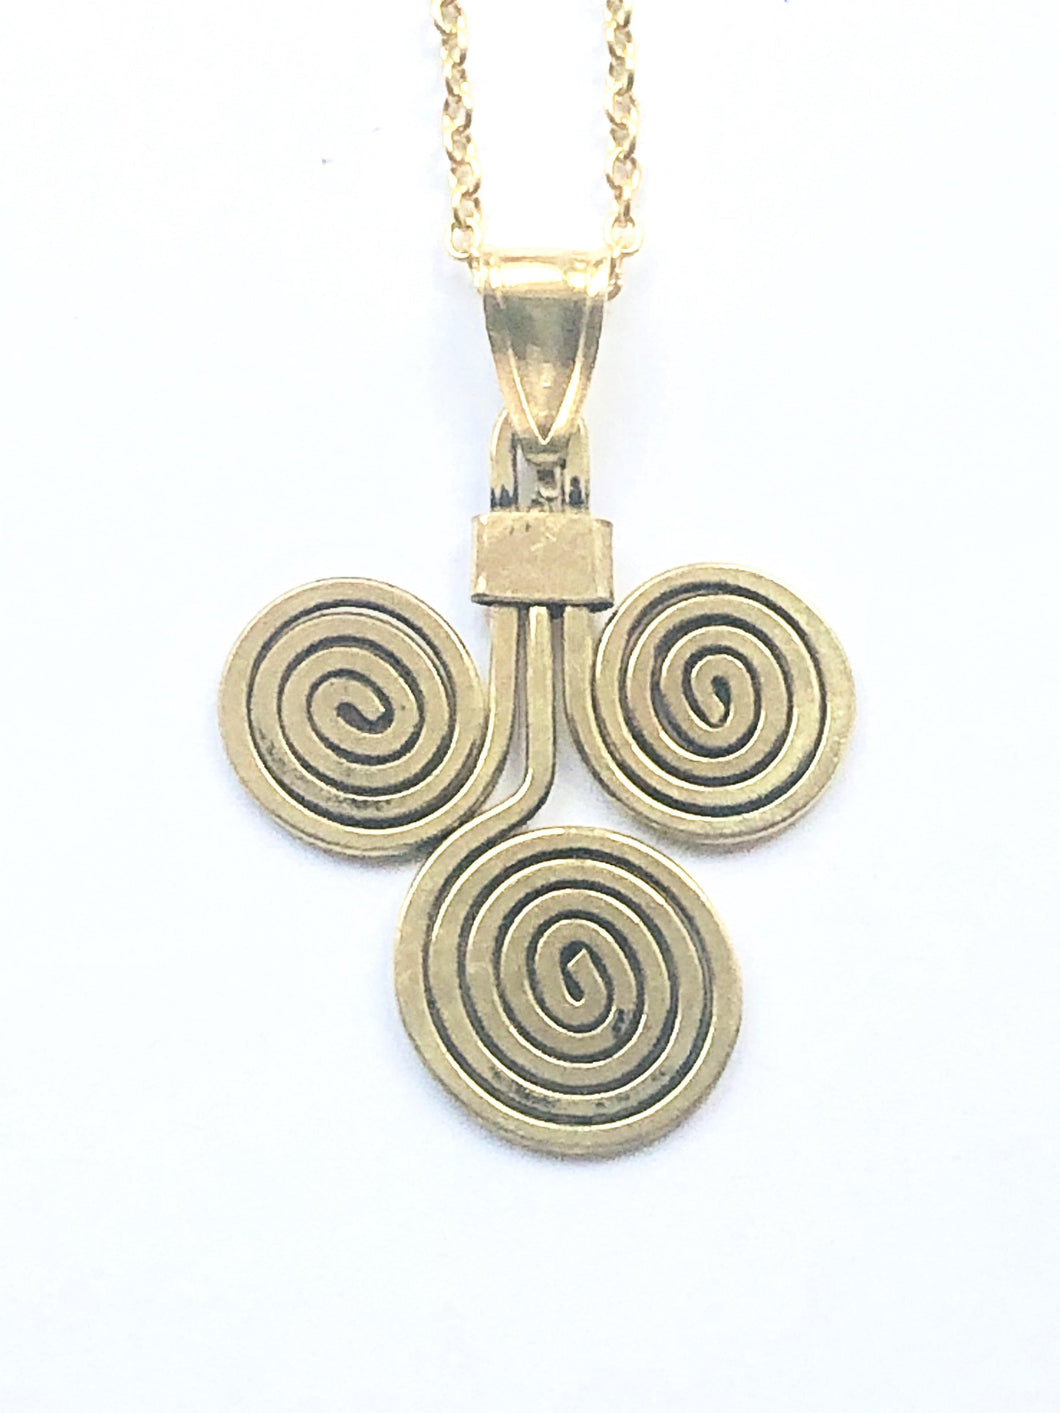 Brass Spiral Necklace - Full Moon Designs